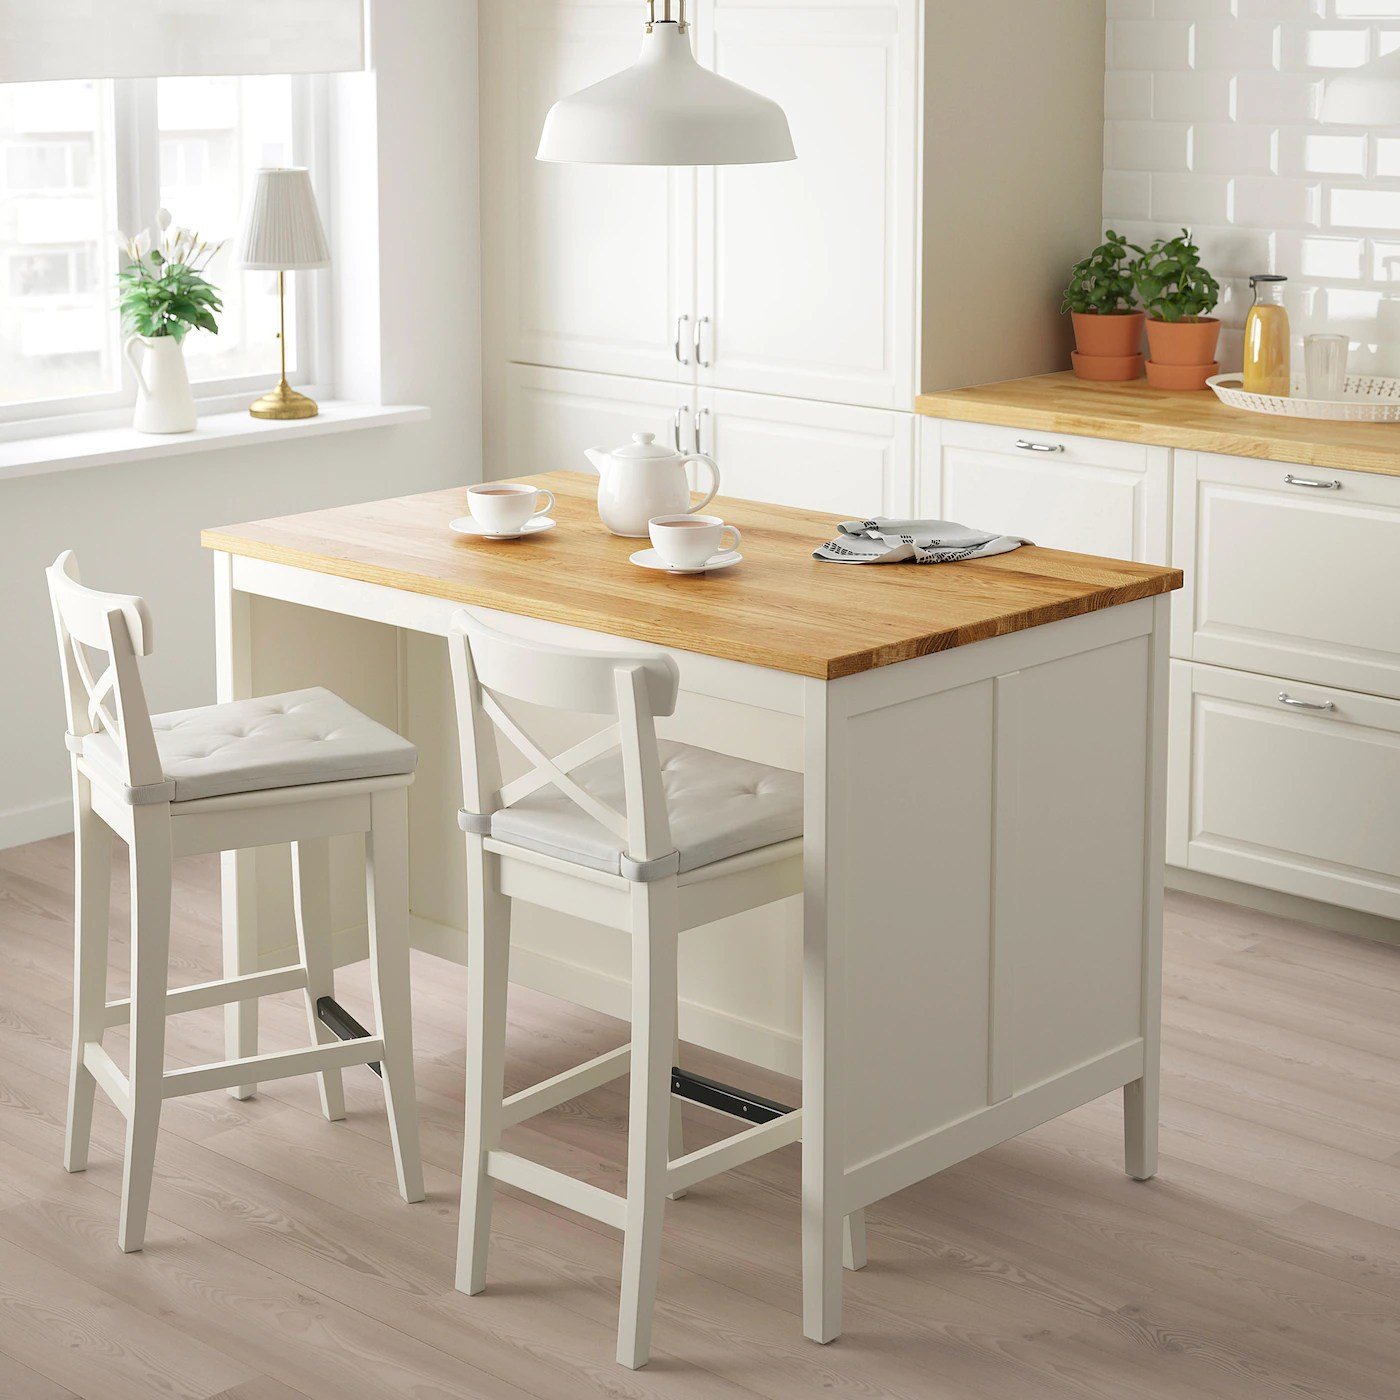 Tornviken Kitchen Island Off White Oak Shop Ikea Ca Ikea